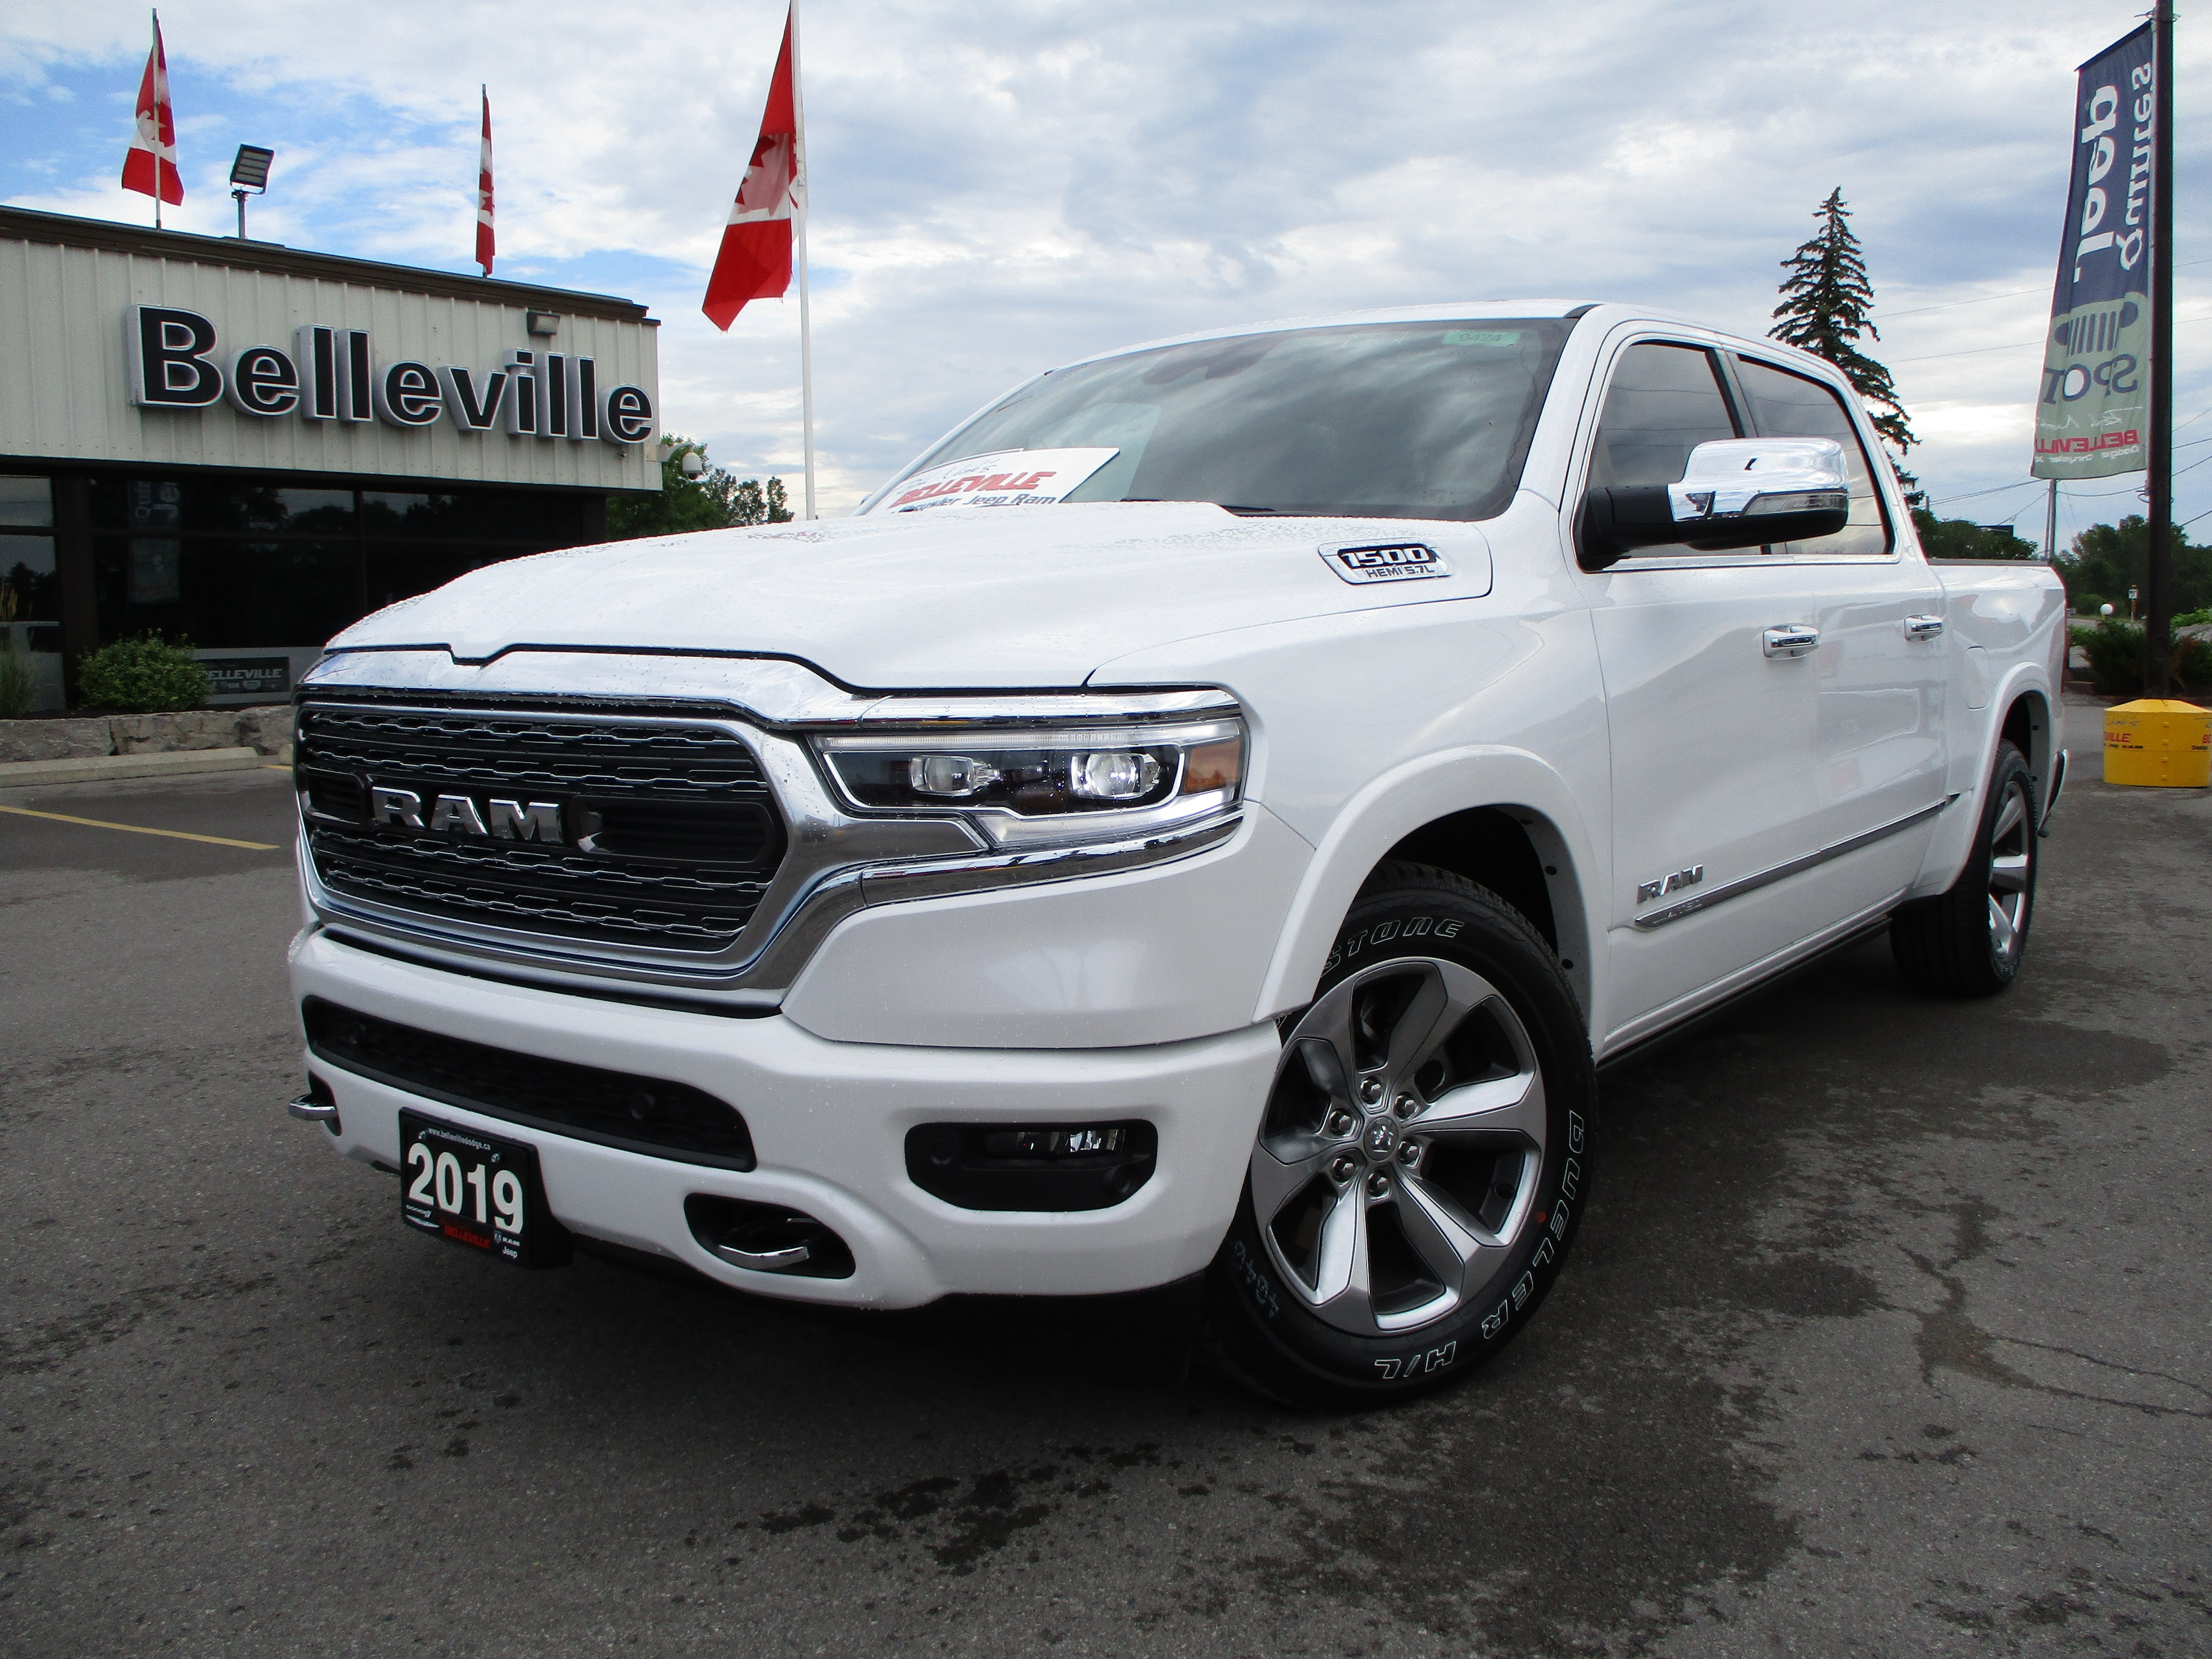 2019 Ram All-New 1500 Limited - 12' dispay - pano roof - cooled seats Truck Crew Cab